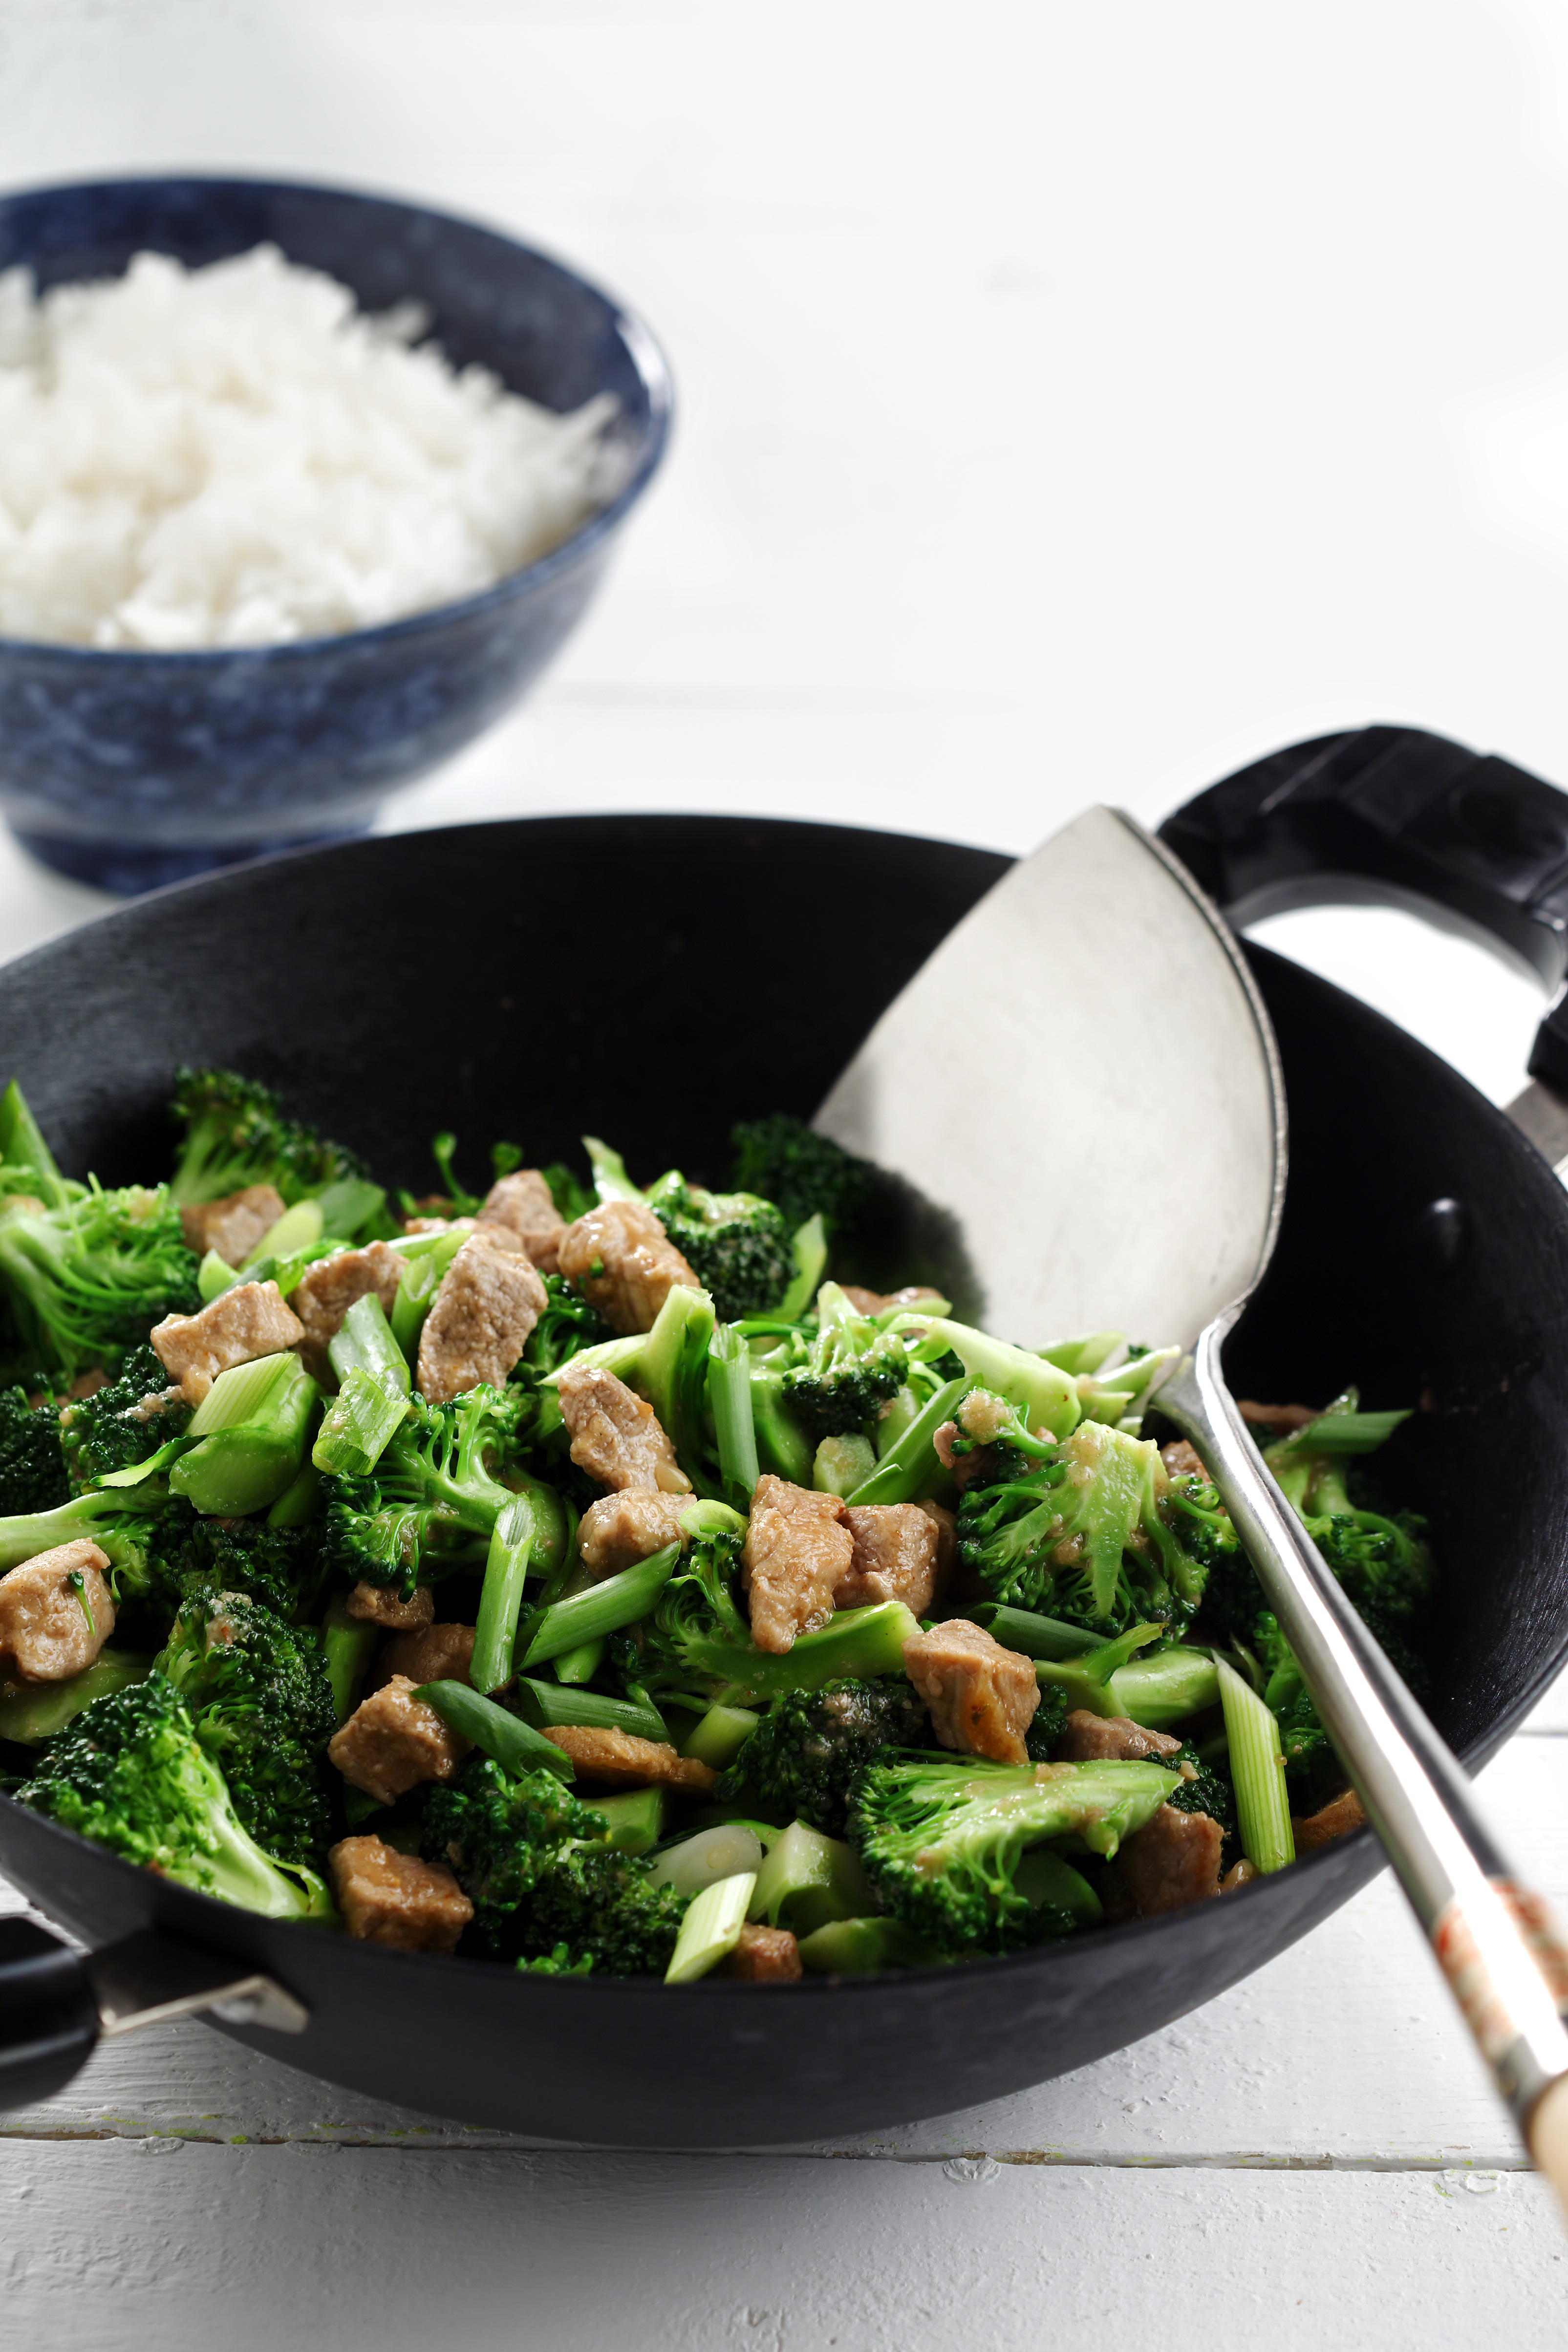 Stir-fried pork and broccoli with garlic-ginger sauce in a black wok